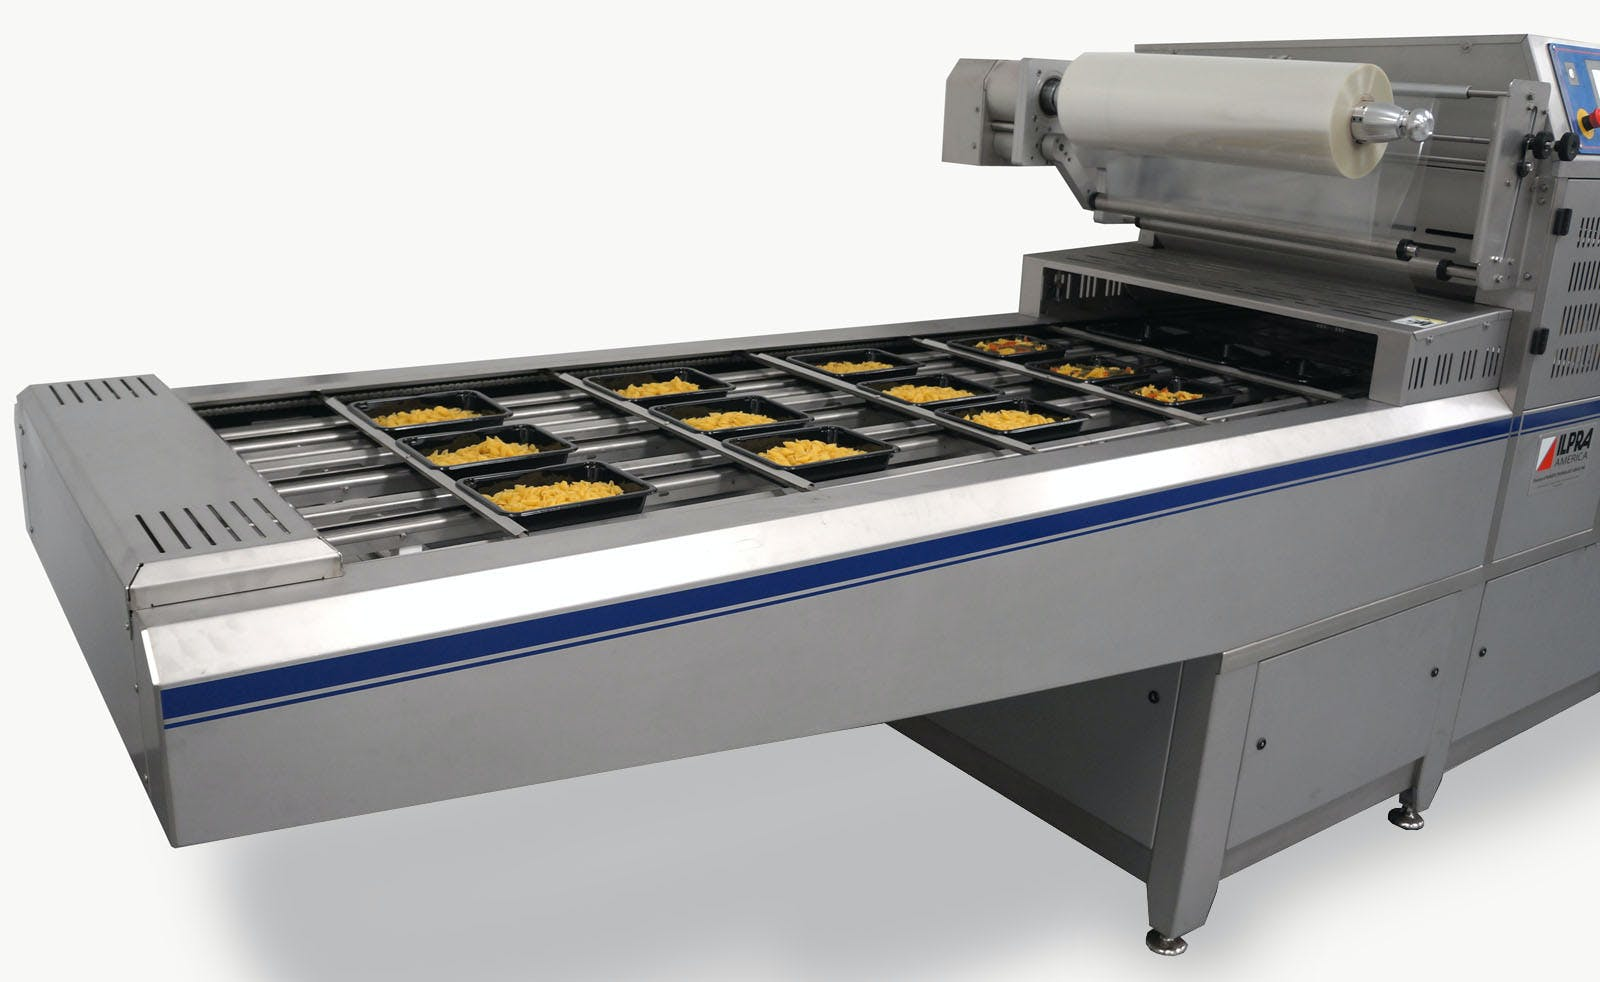 Tray Sealer Tray sealer sold by Roberts Technology Group, Inc.